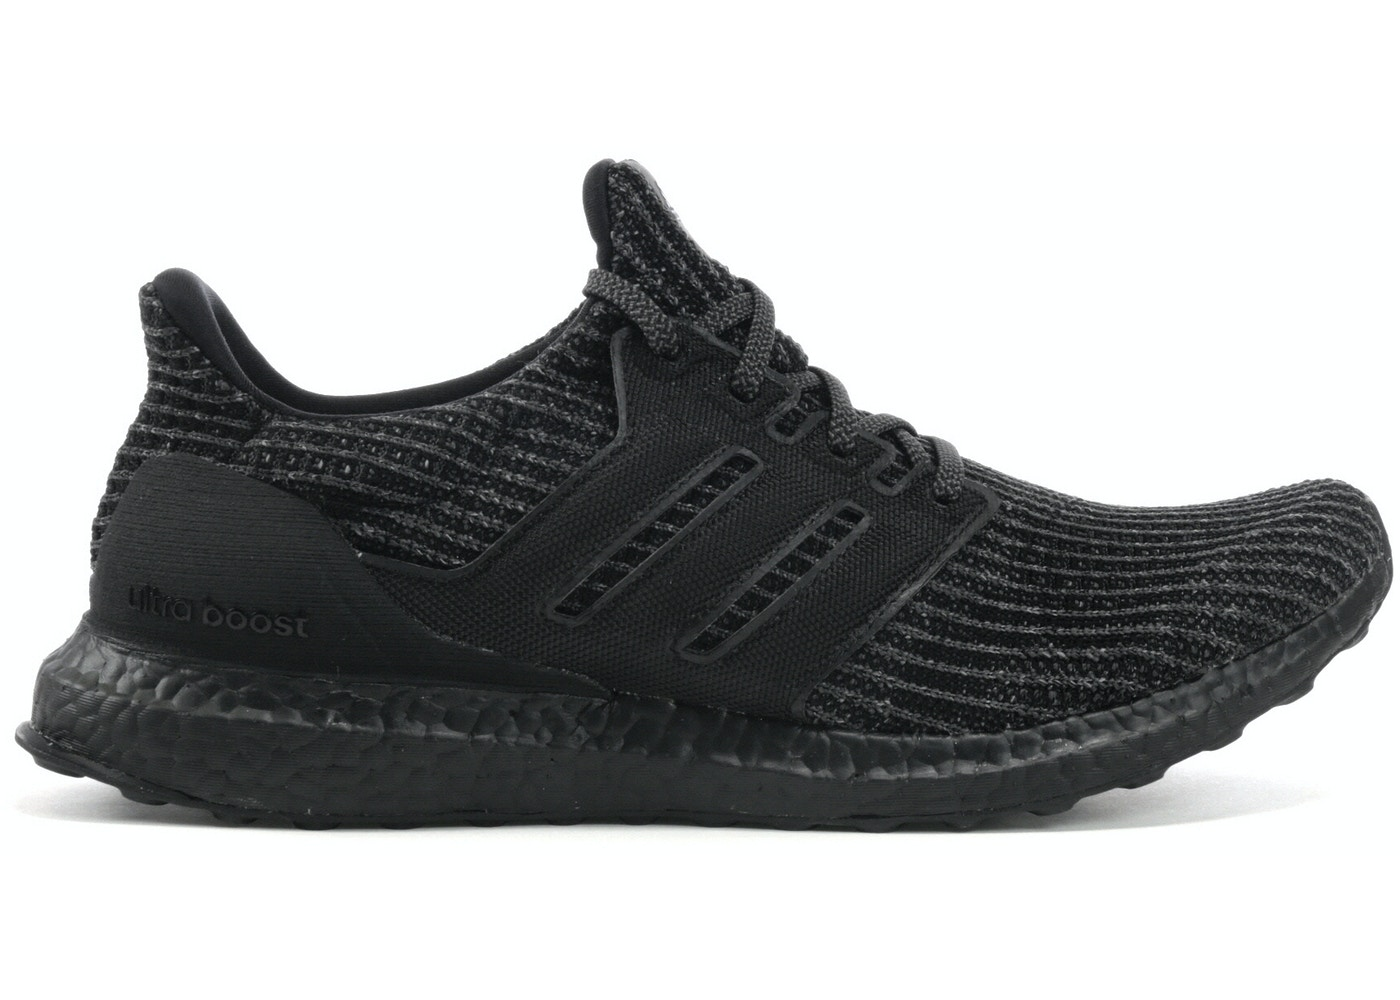 lowest price 0b8c2 f717b adidas Ultra Boost 4.0 Triple Black - BB6171